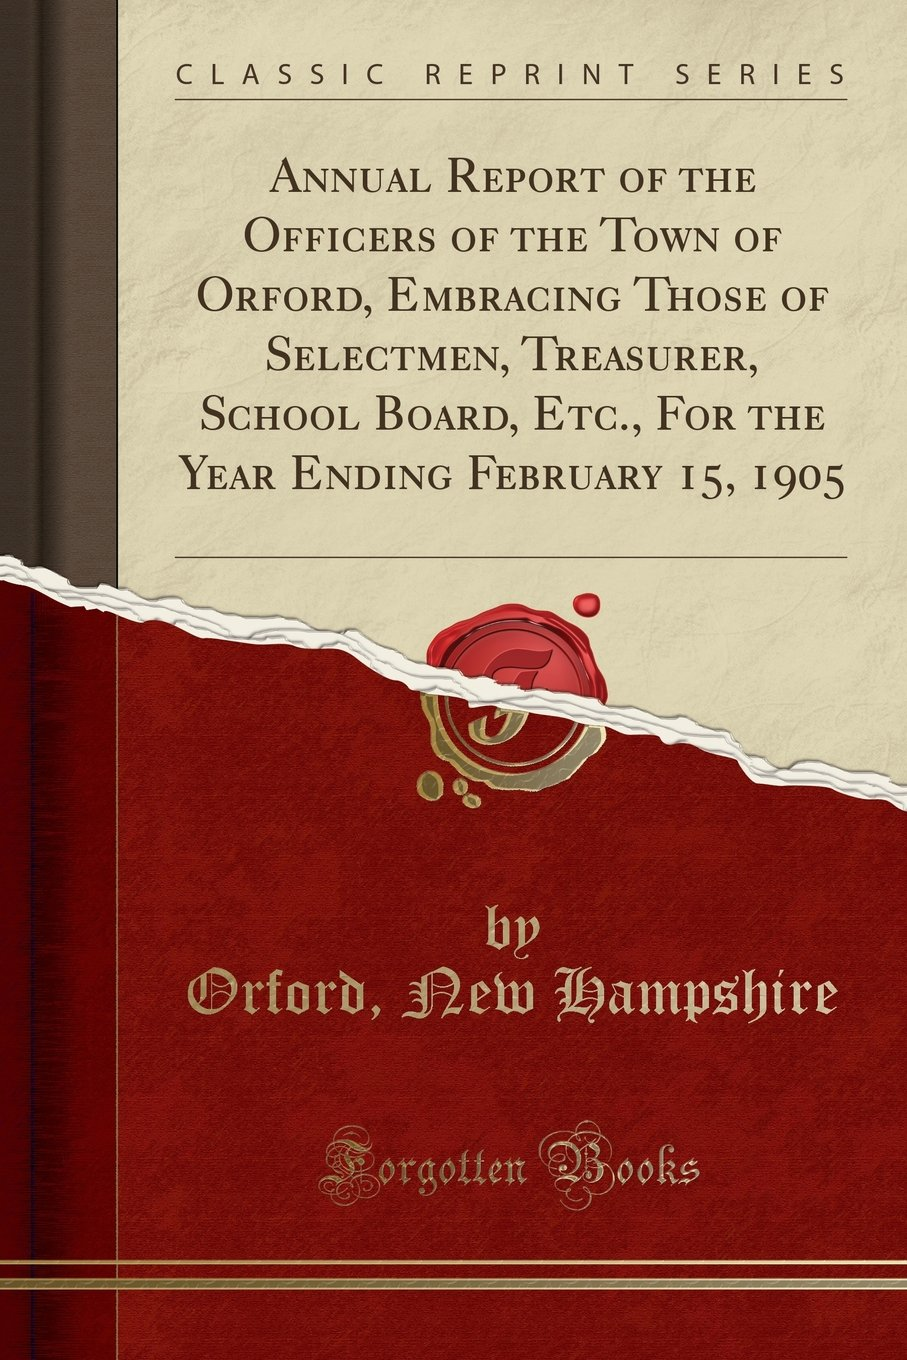 Download Annual Report of the Officers of the Town of Orford, Embracing Those of Selectmen, Treasurer, School Board, Etc., For the Year Ending February 15, 1905 (Classic Reprint) PDF